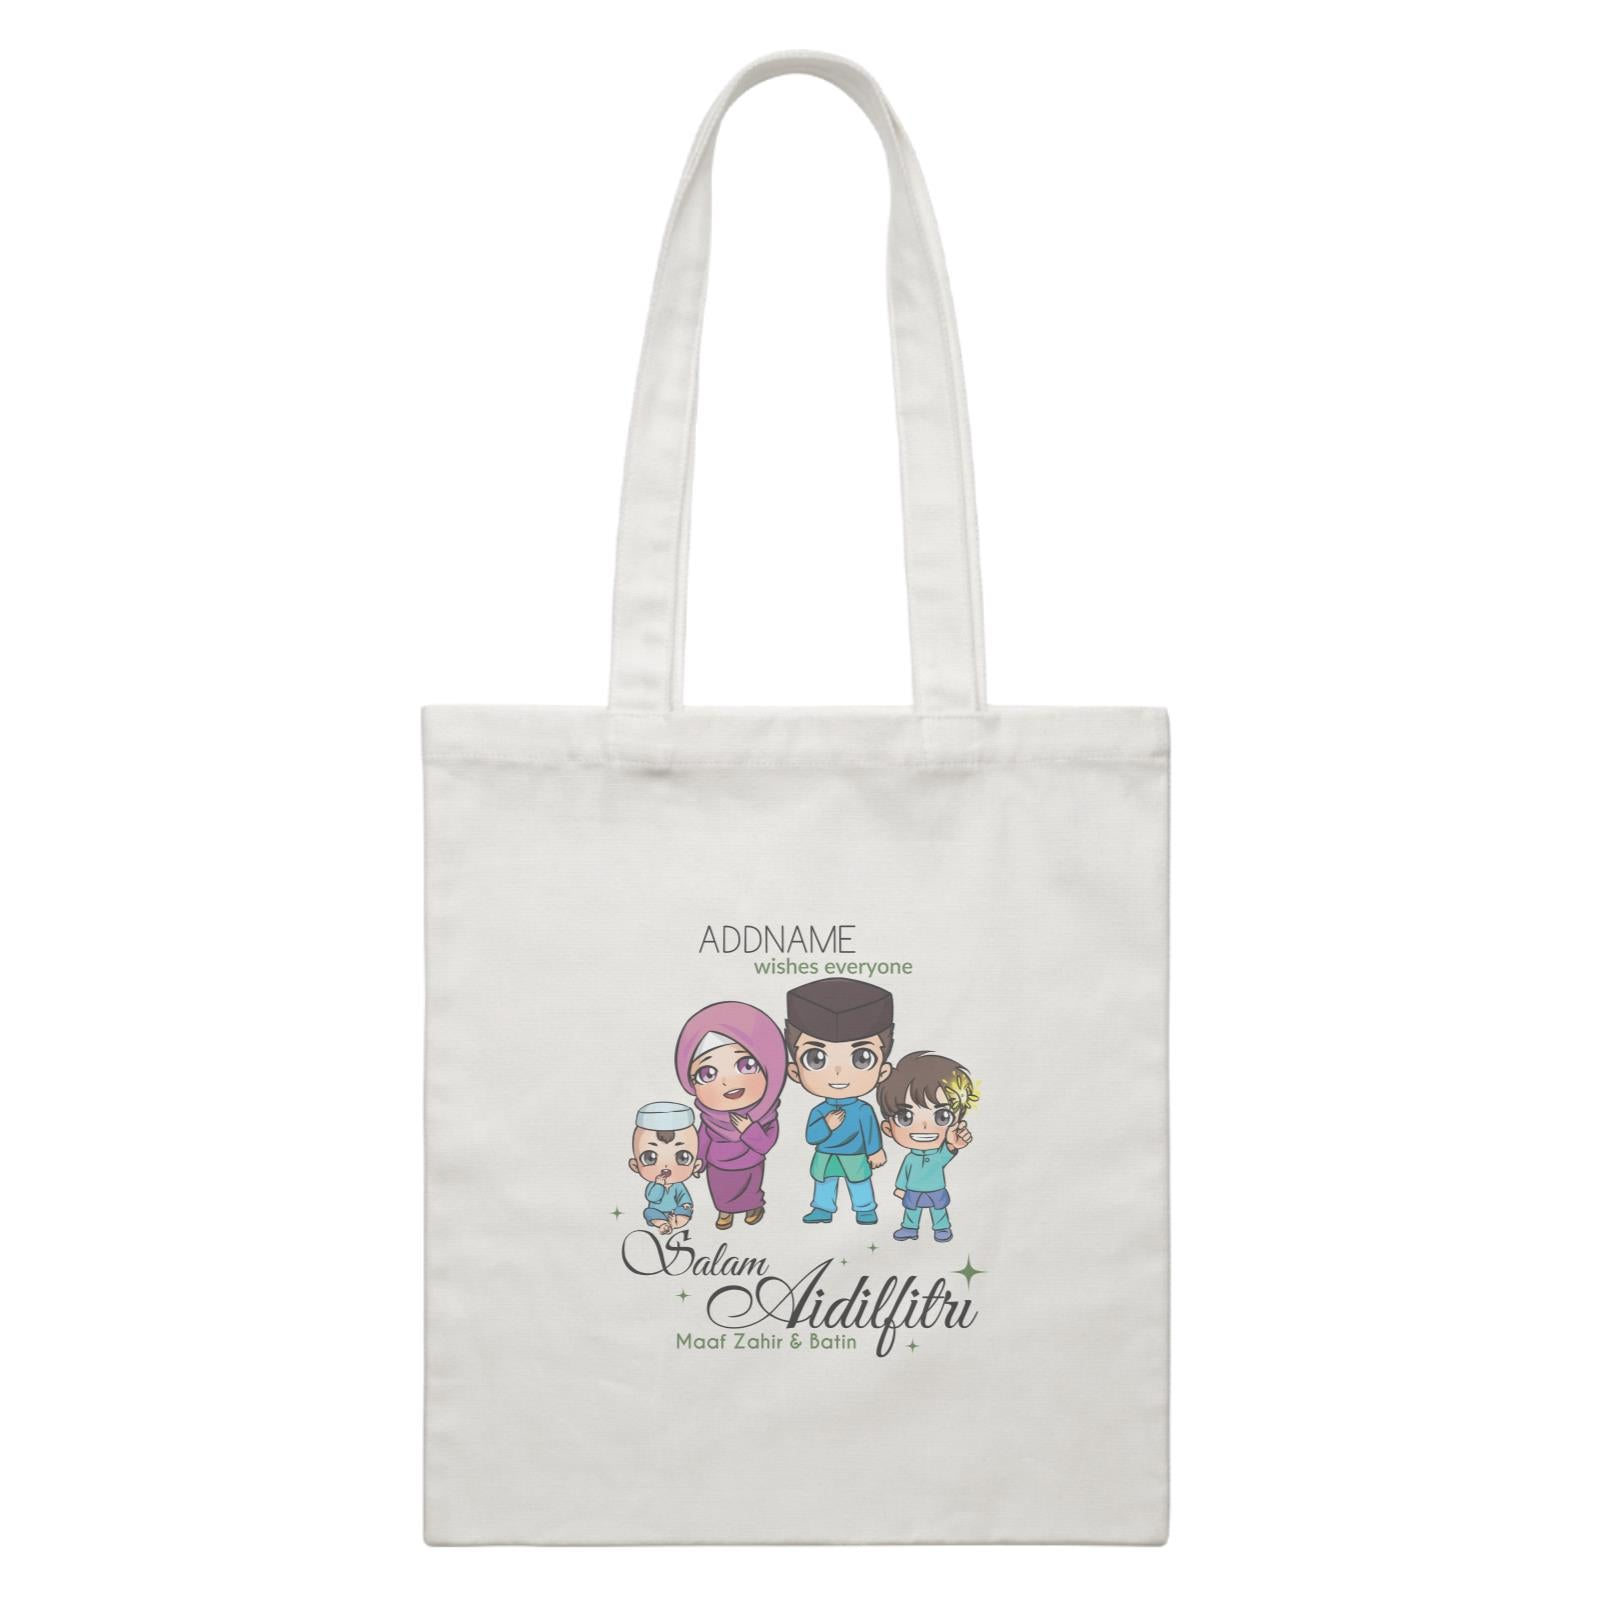 Raya Chibi Family Boy And Baby Boy Addname Wishes Everyone Salam Aidilfitri Maaf Zahir & Batin White Canvas Bag